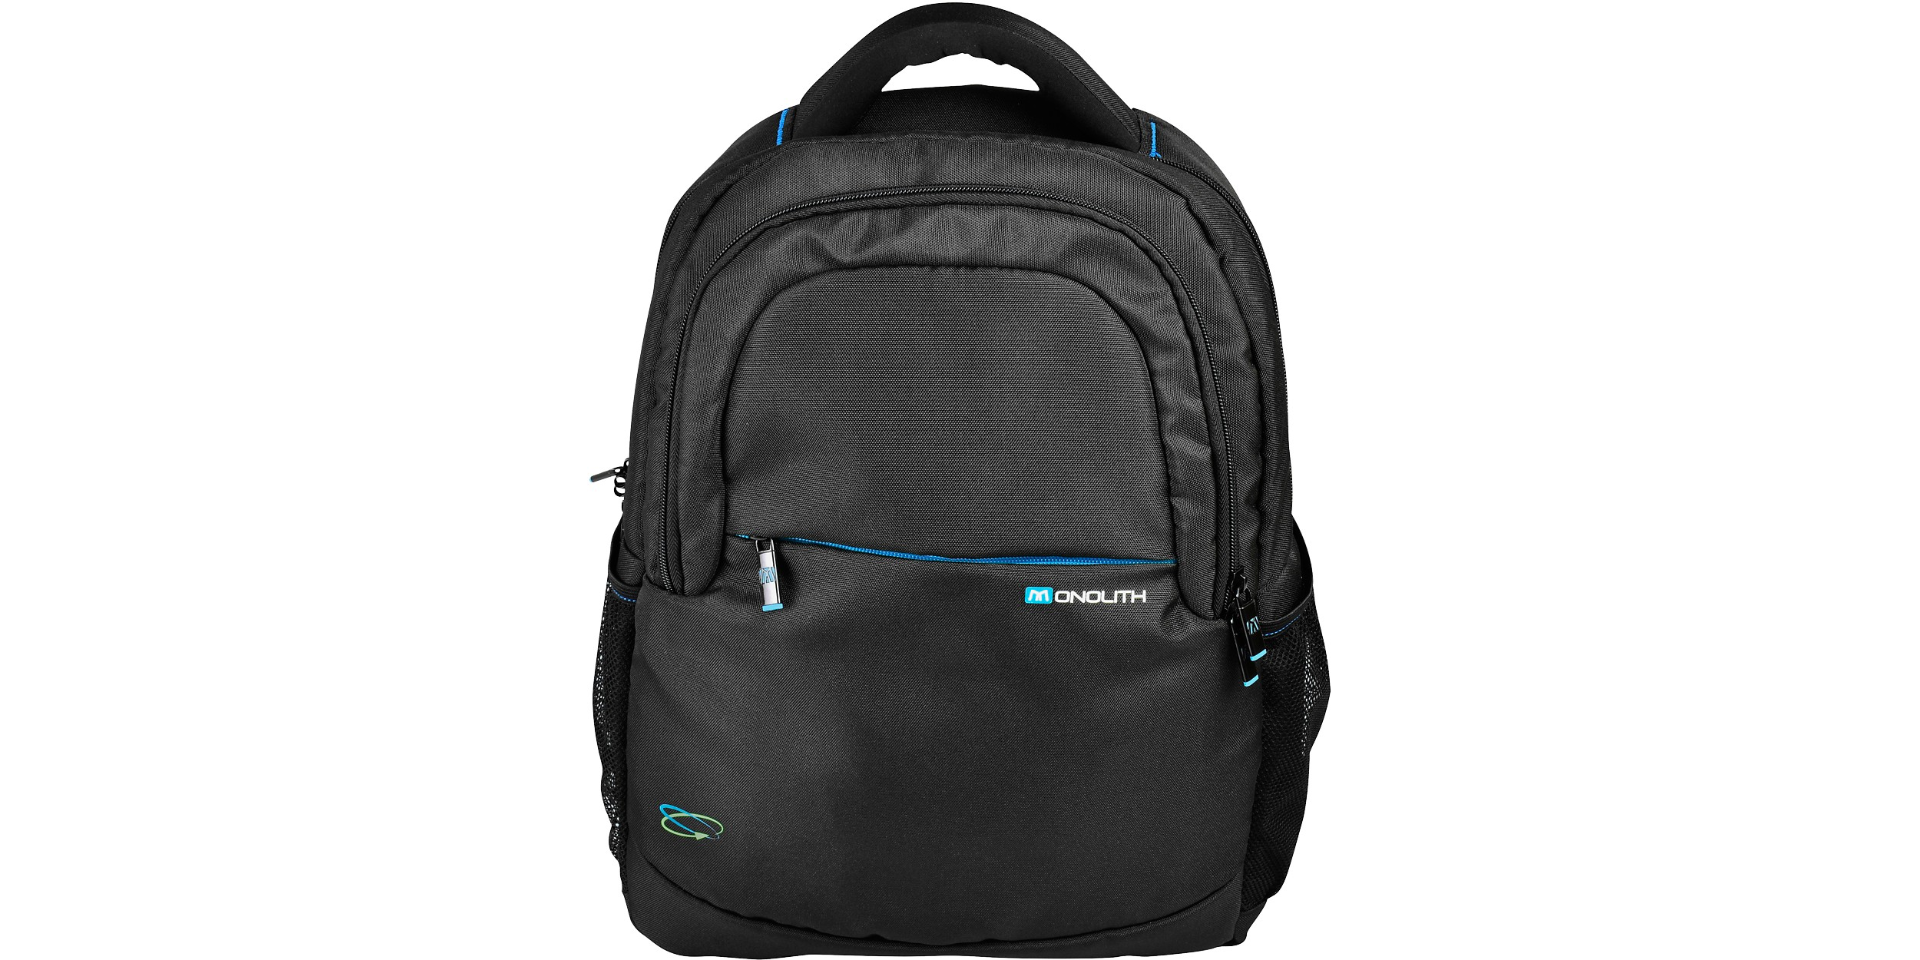 Bags & Cases Monolith Blue Line Laptop Backpack 15.6in